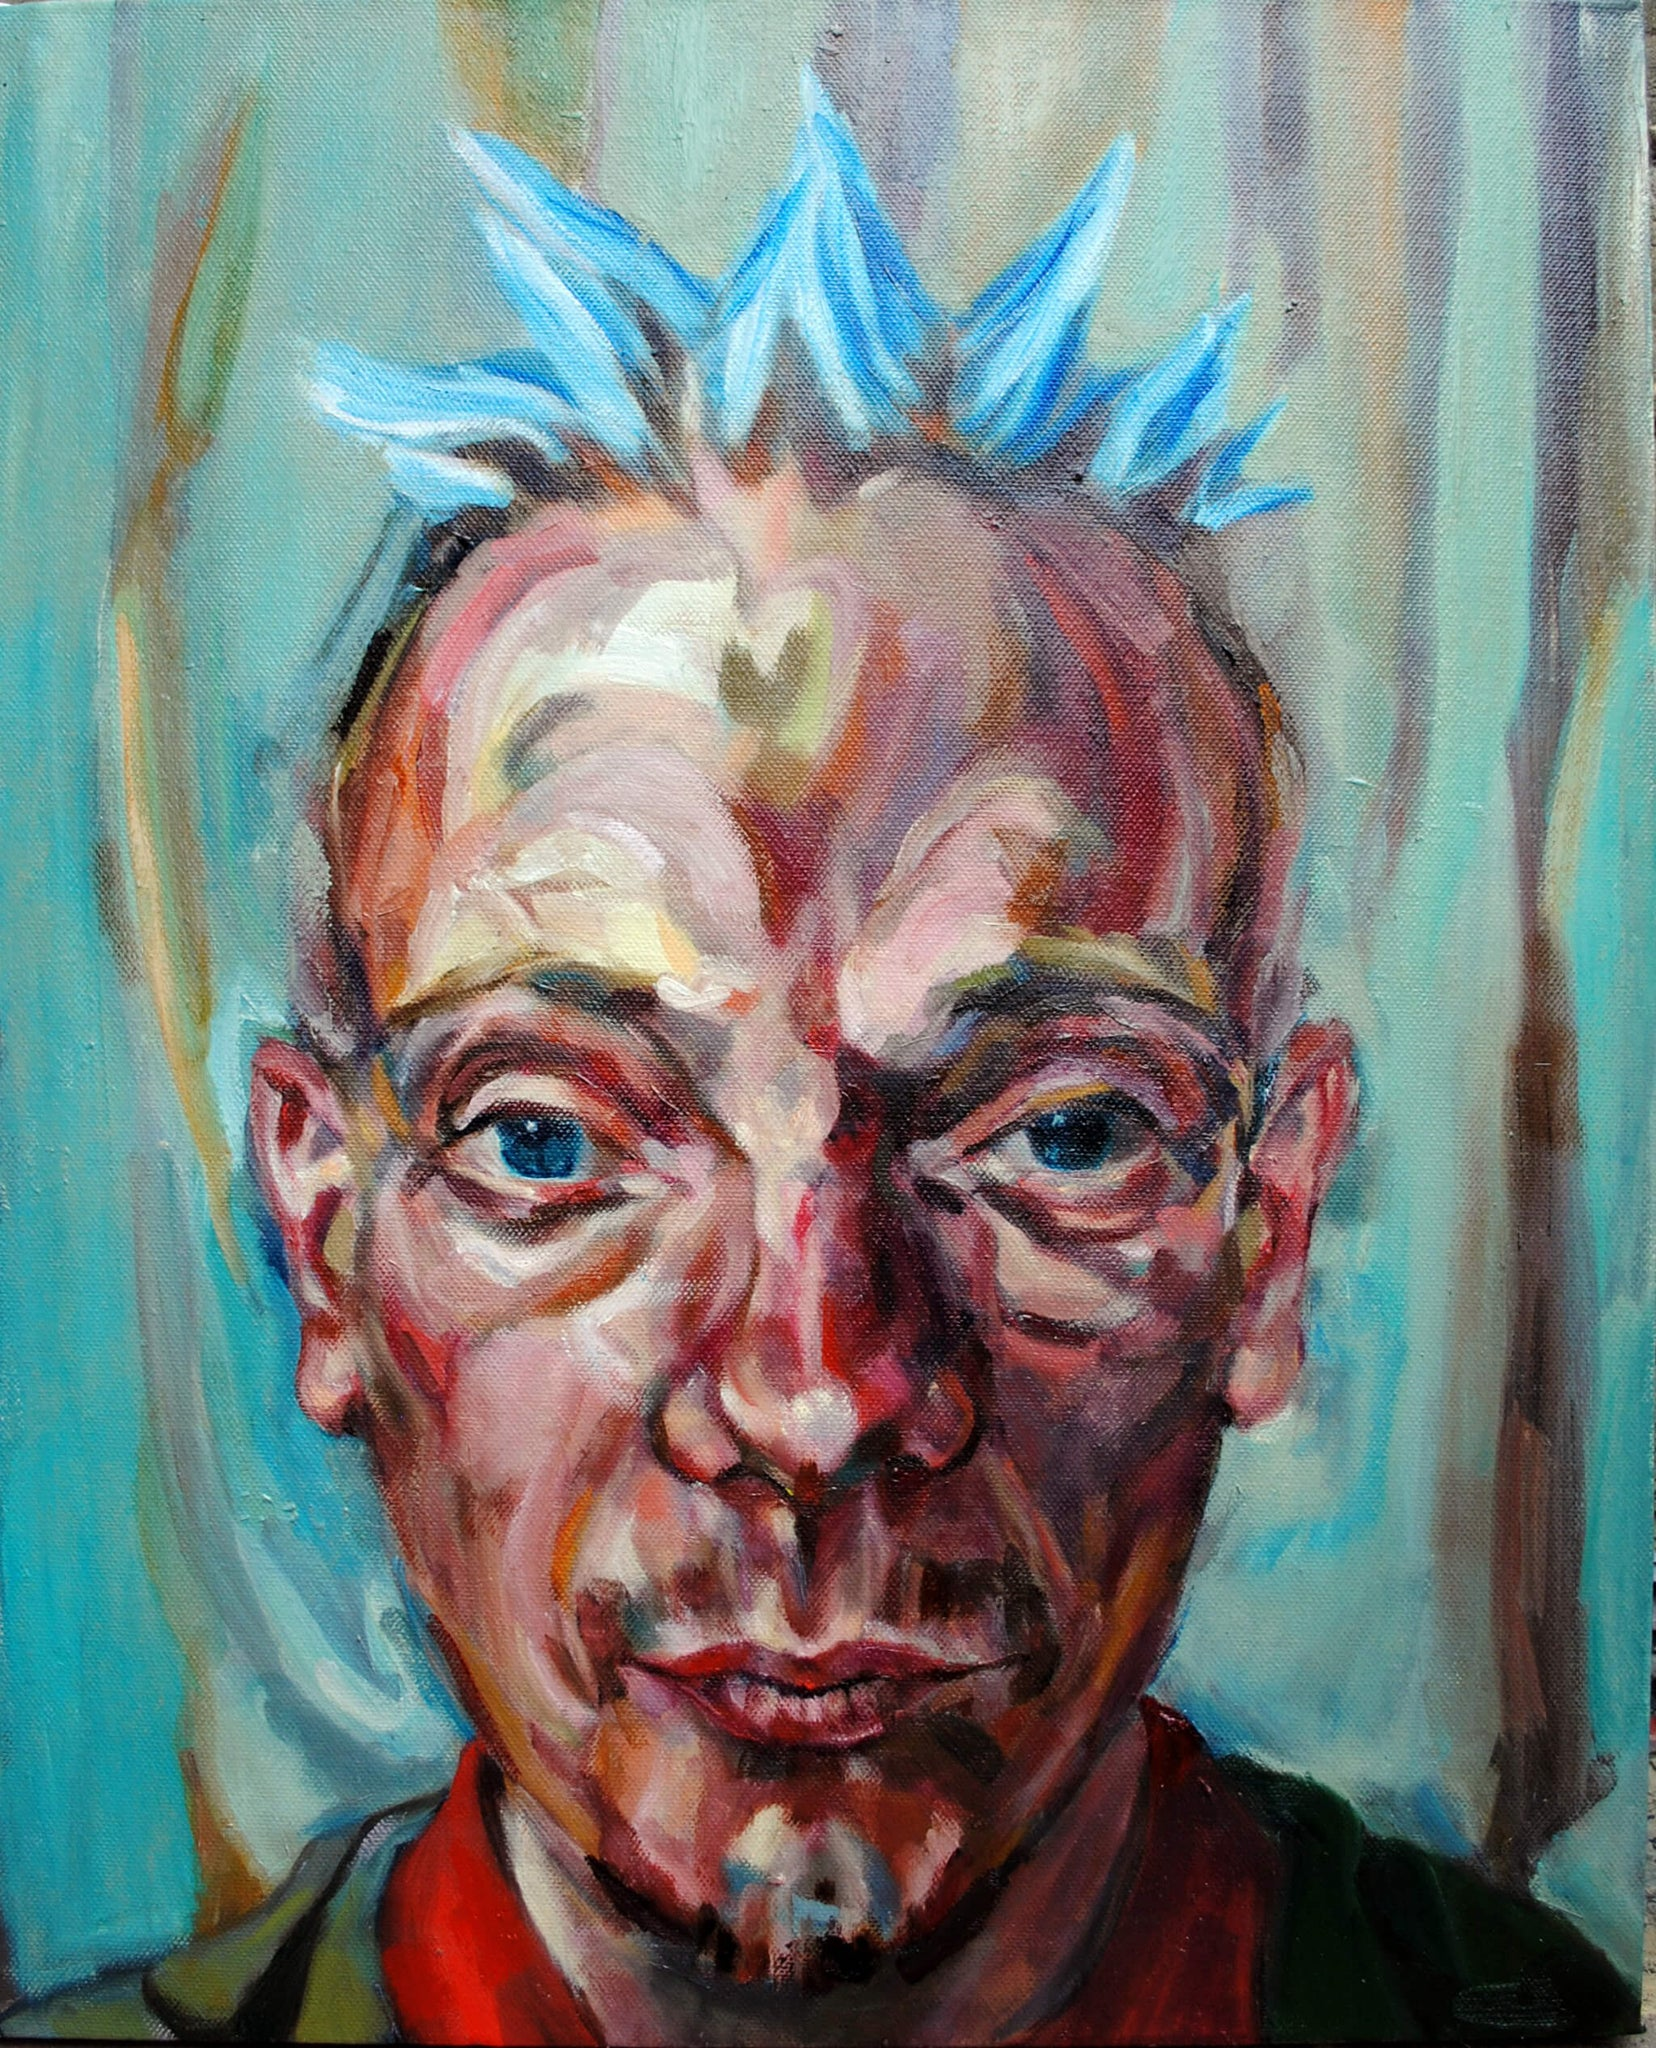 Spikey the bed o' nails artist Covent Garden oils on canvas artwork by Stella Tooth.